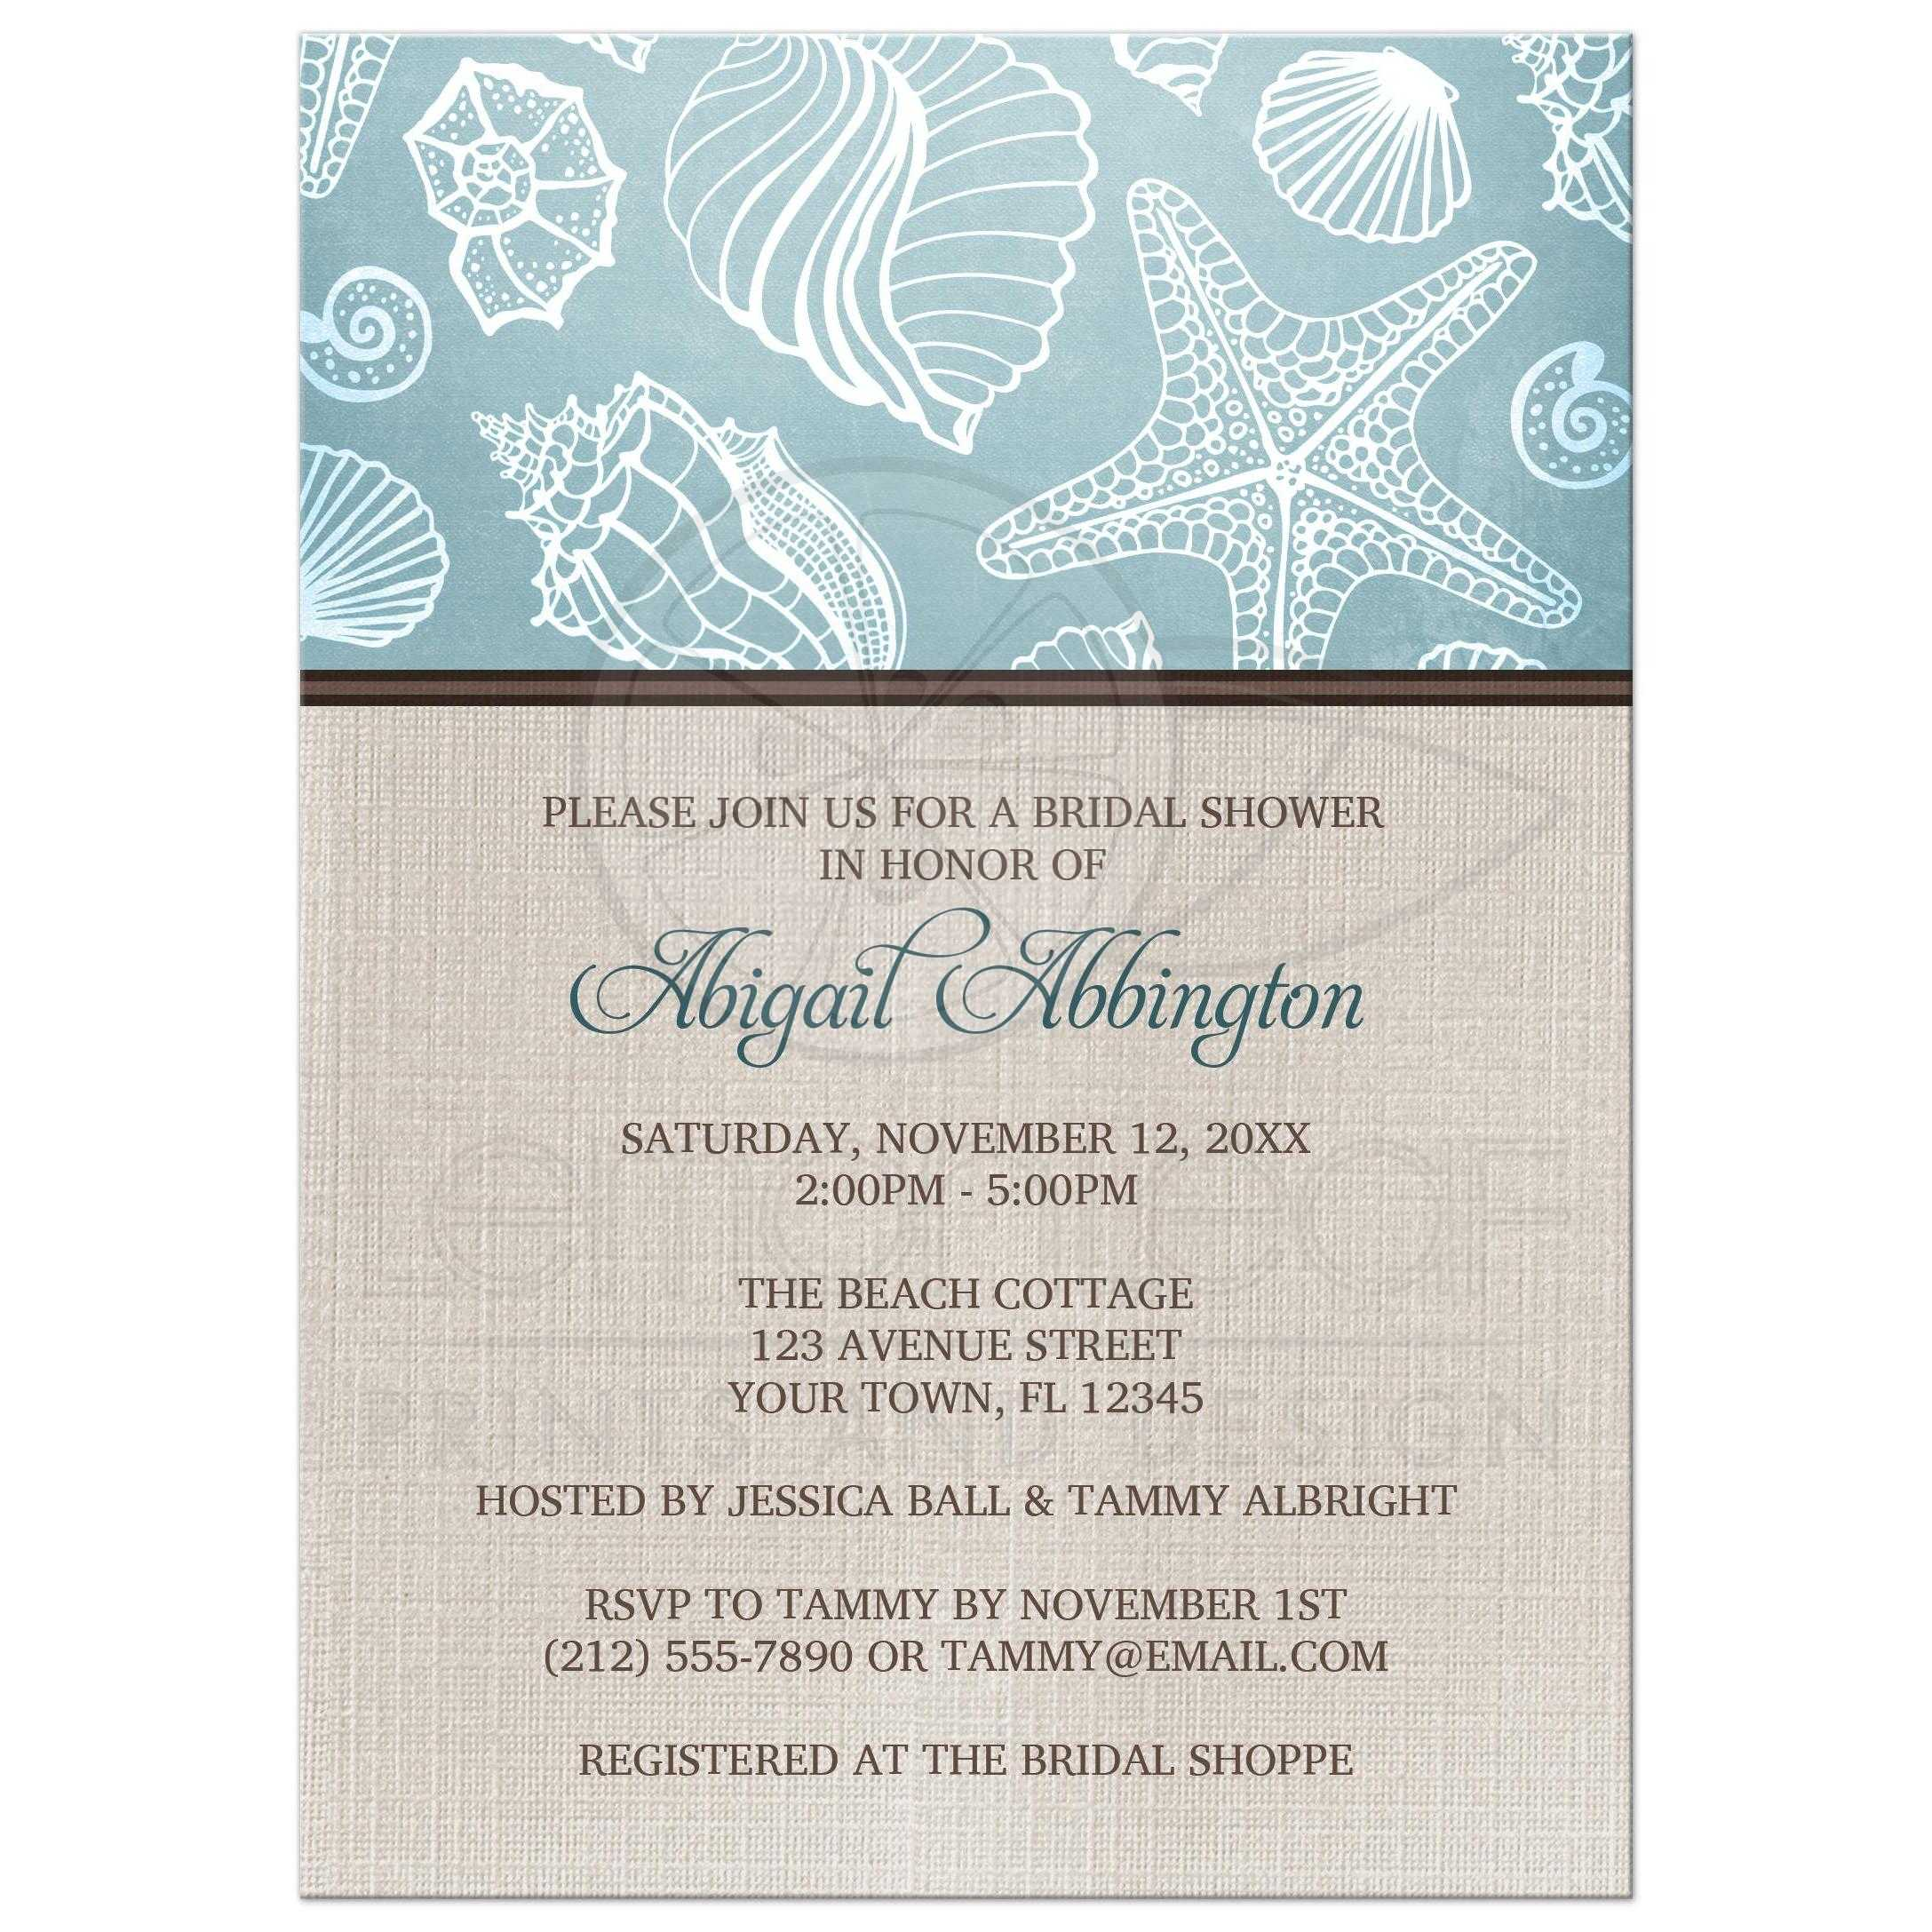 23603 Rectangle Rustic Beach Linen Seashells Bridal Shower Invitations Jpg T 1429229483